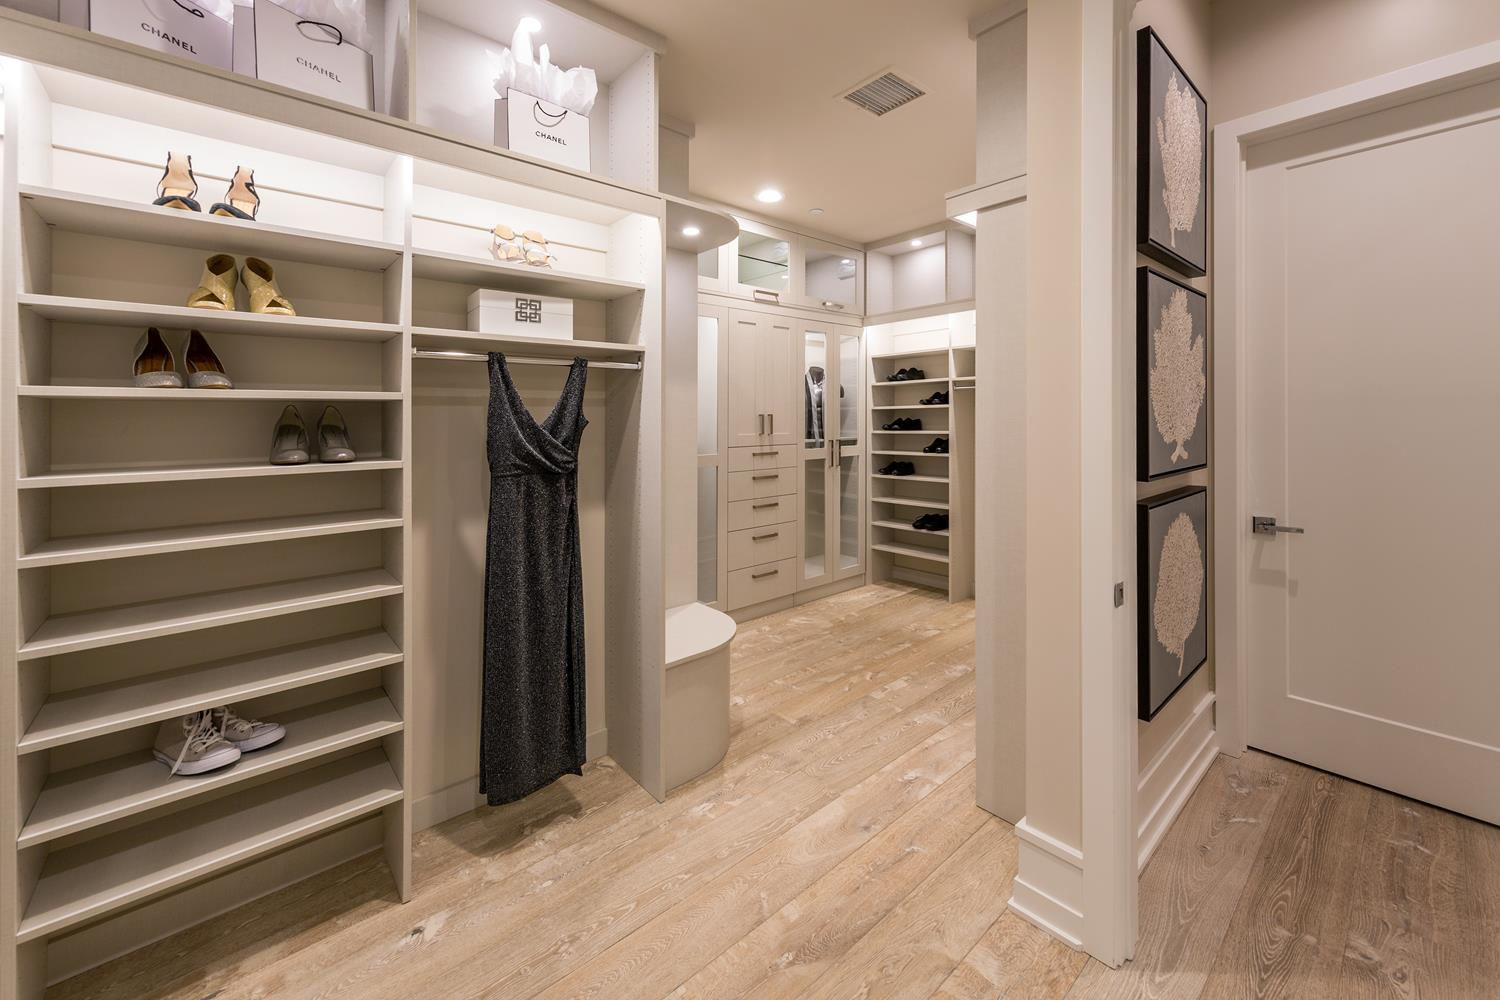 Walk-in closet | 5904 Village Drive | Jewel at Playa Vista in Los Angeles, CA | Brookfield Residential